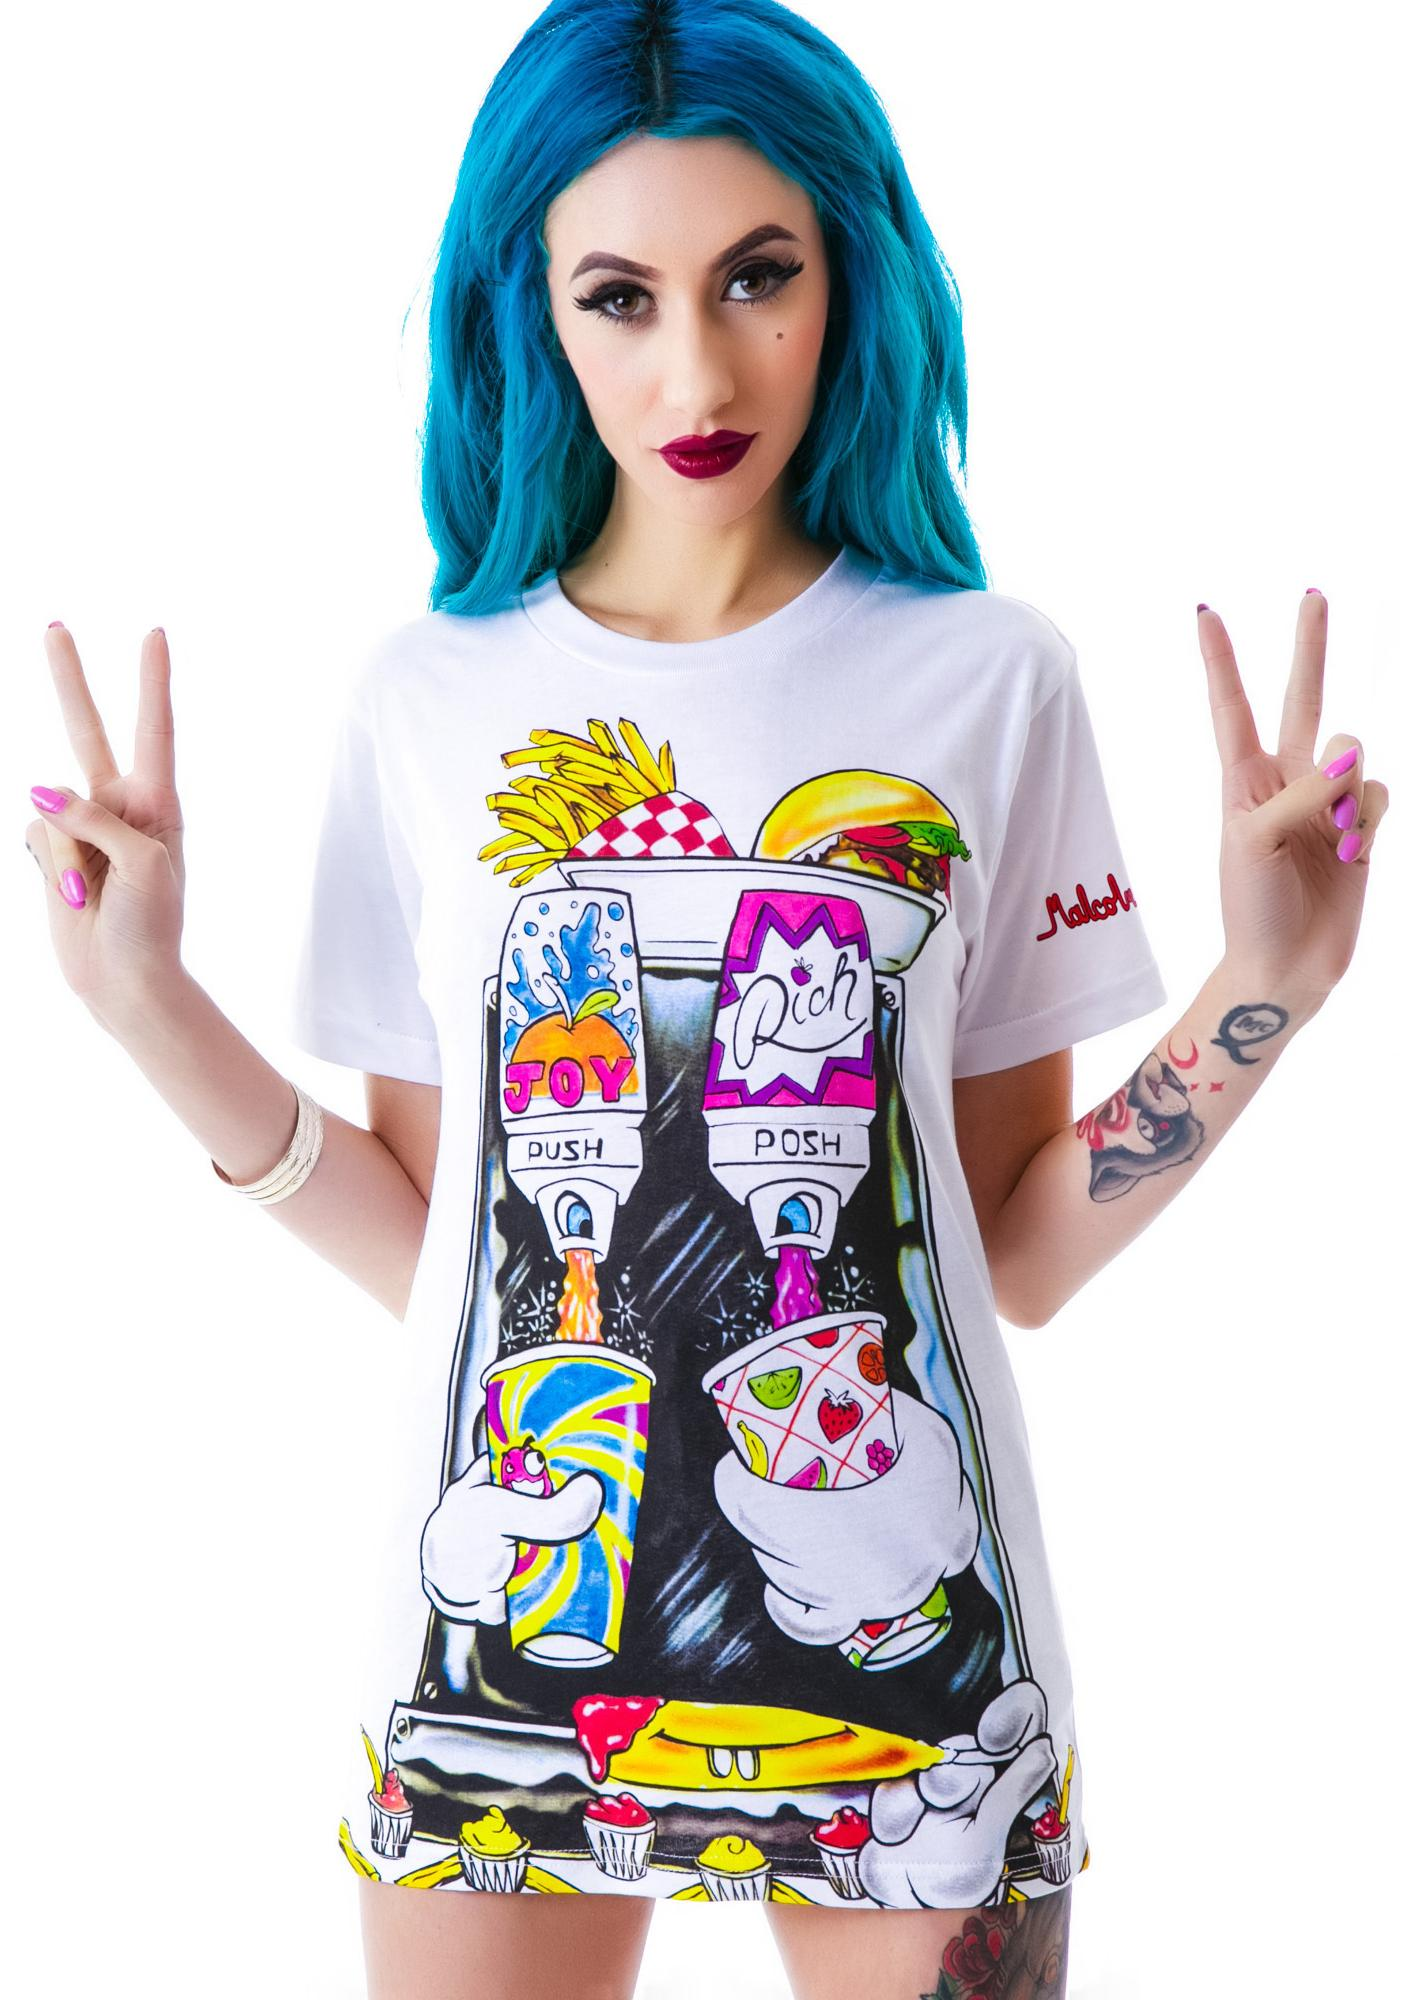 Joyrich The Fountain Tee